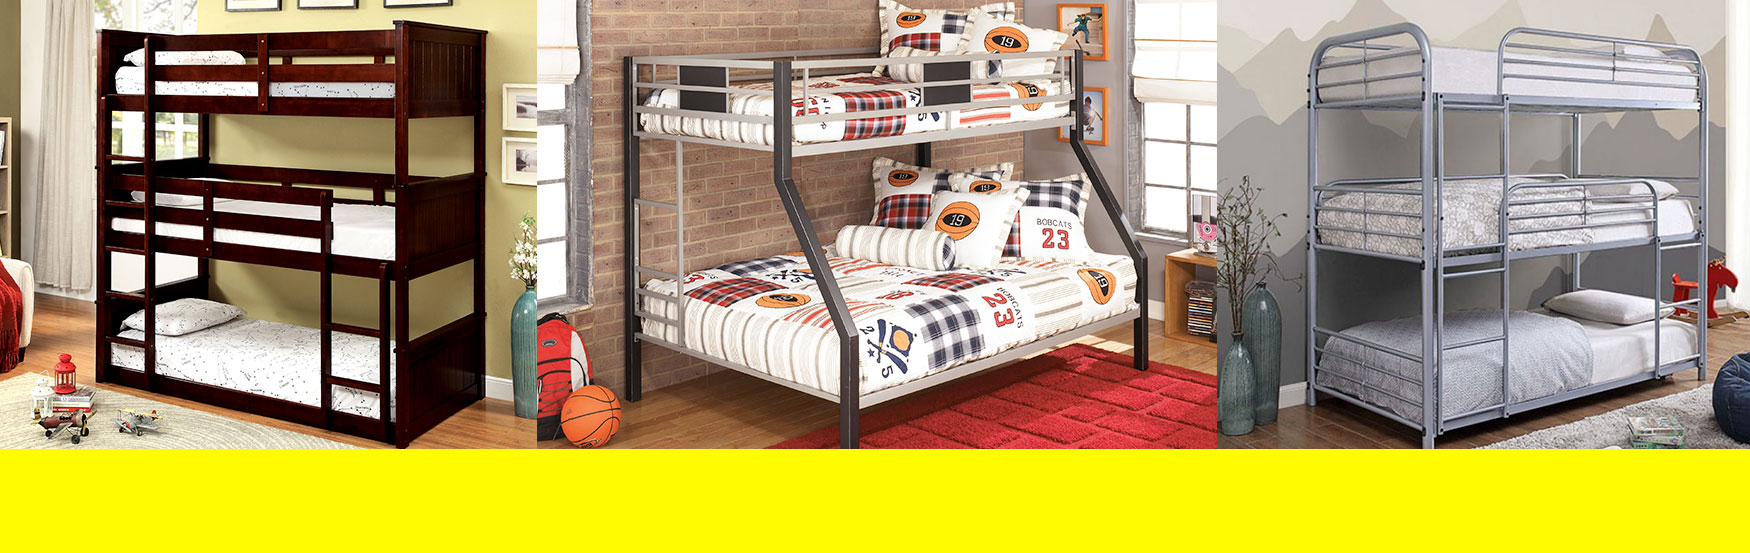 Bunk Beds at H&H